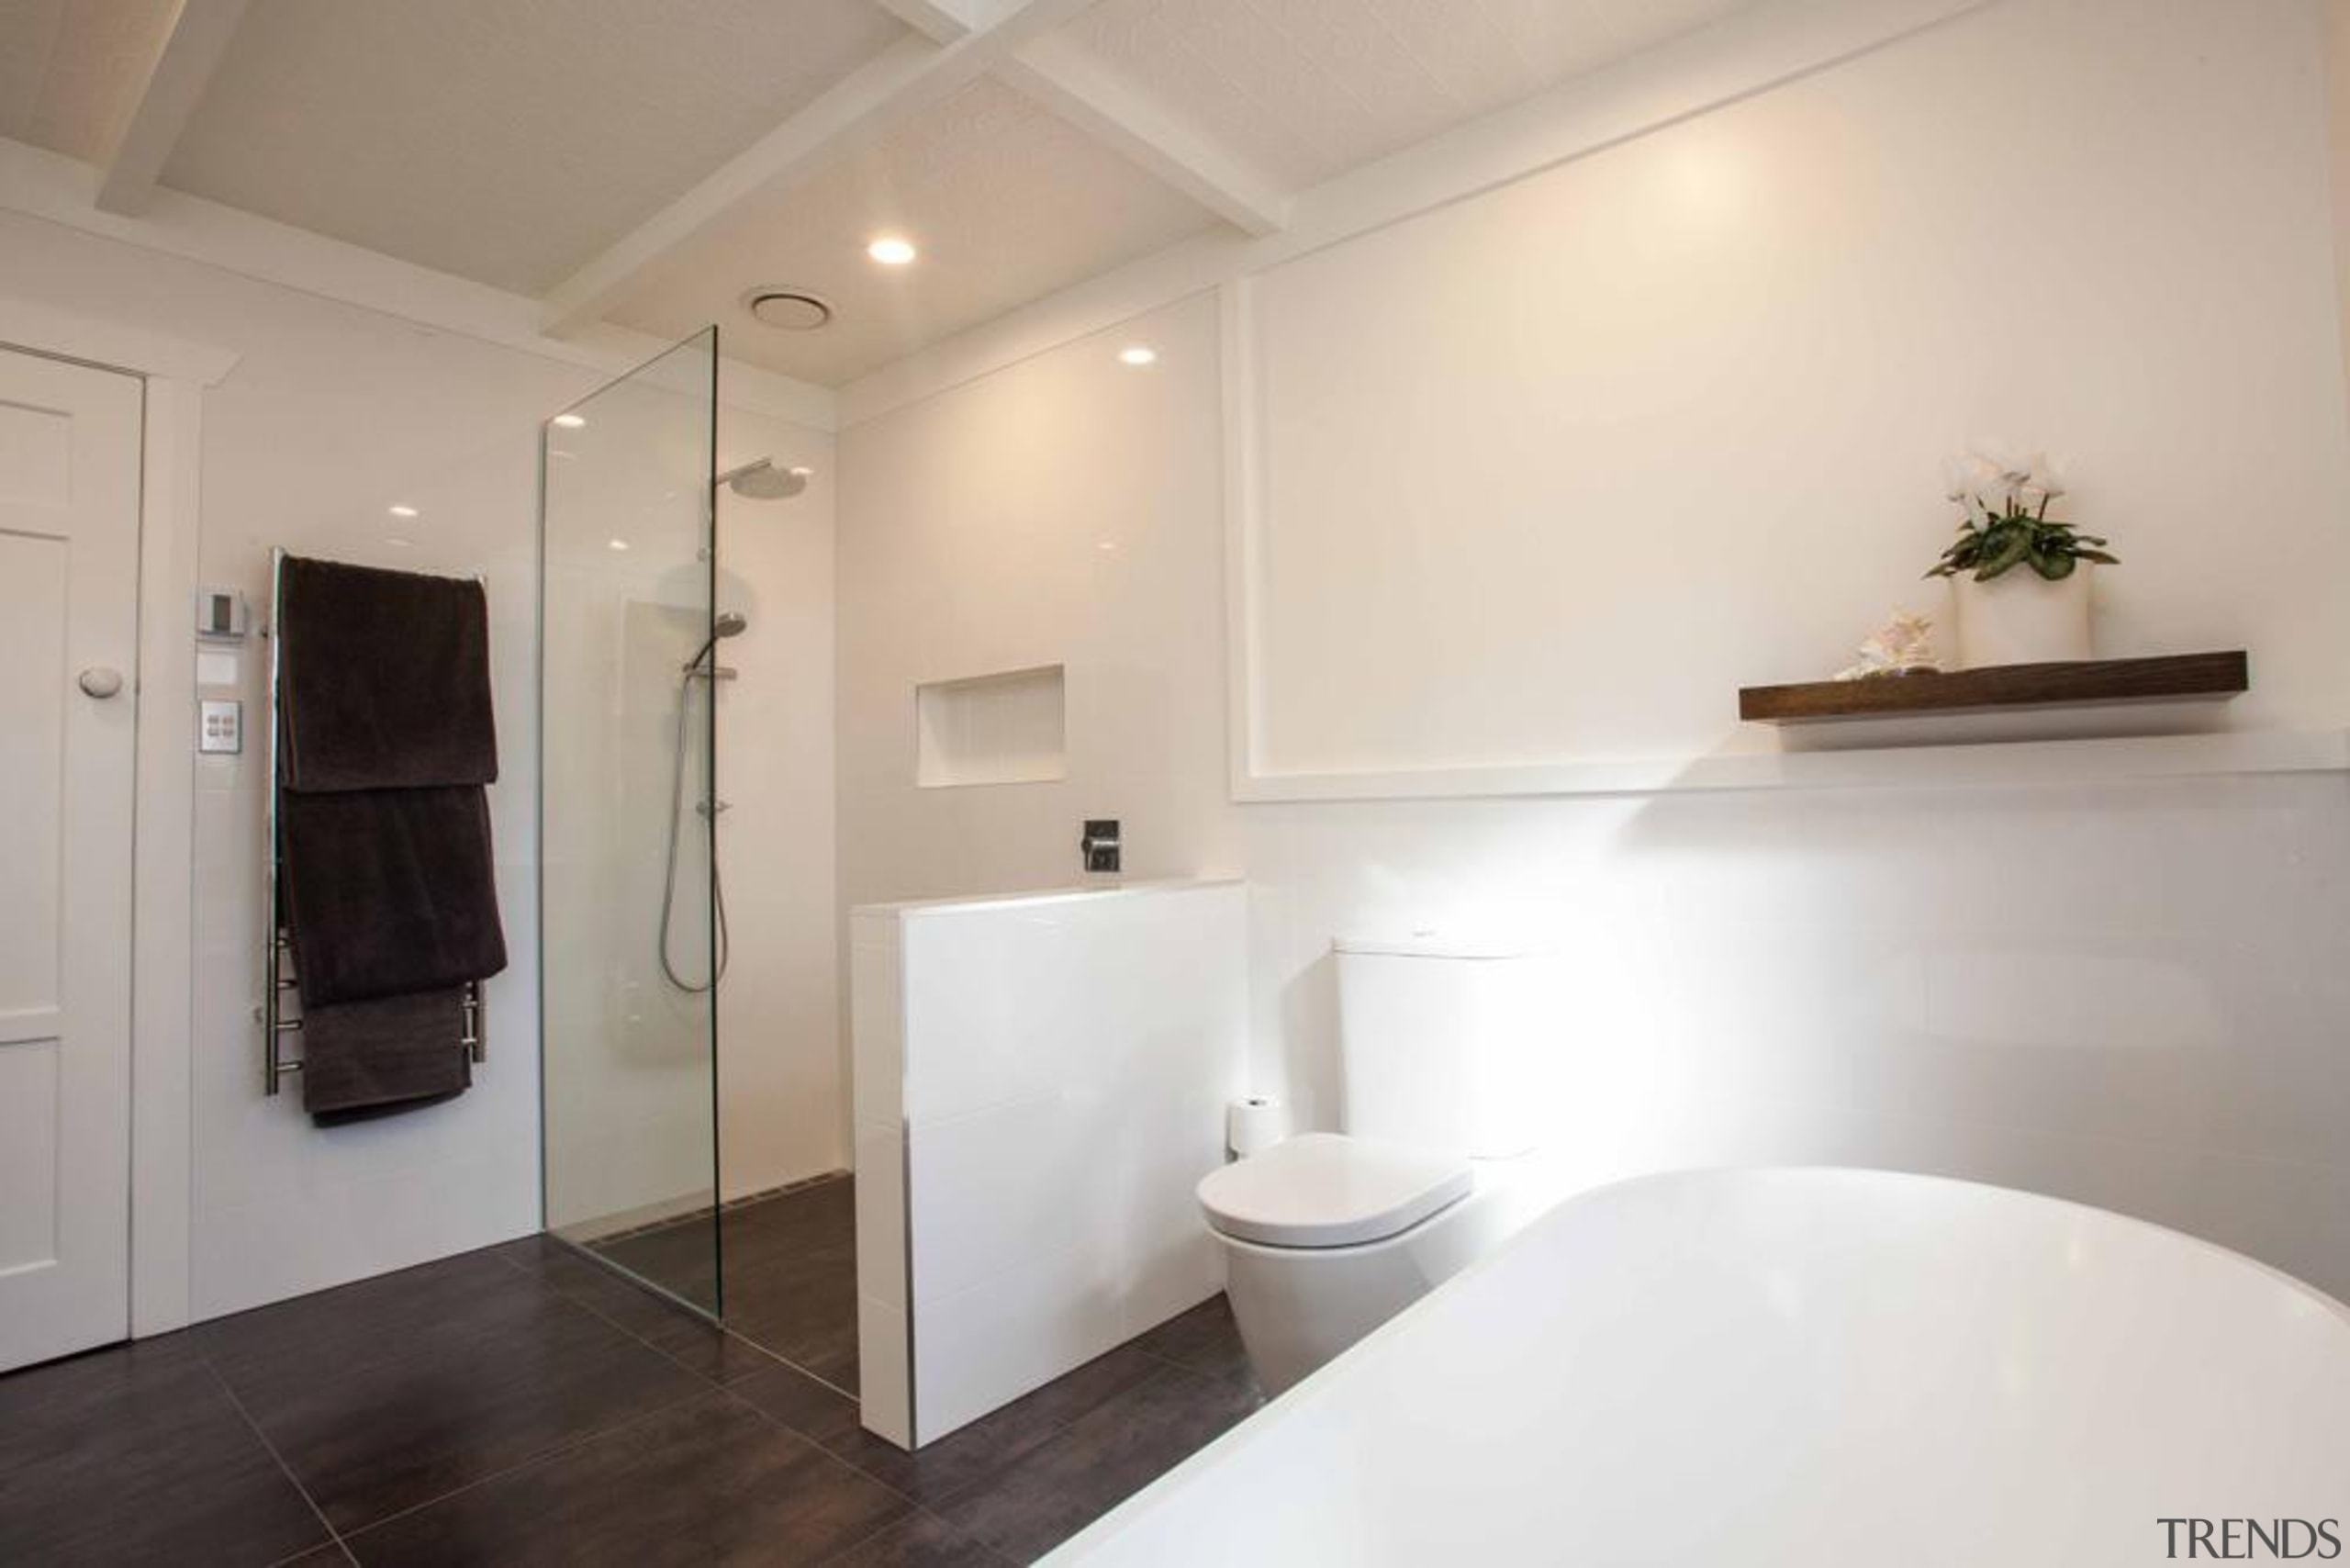 Dark flooring and cabinetry contrast the dominantly white bathroom, floor, home, interior design, property, real estate, room, sink, gray